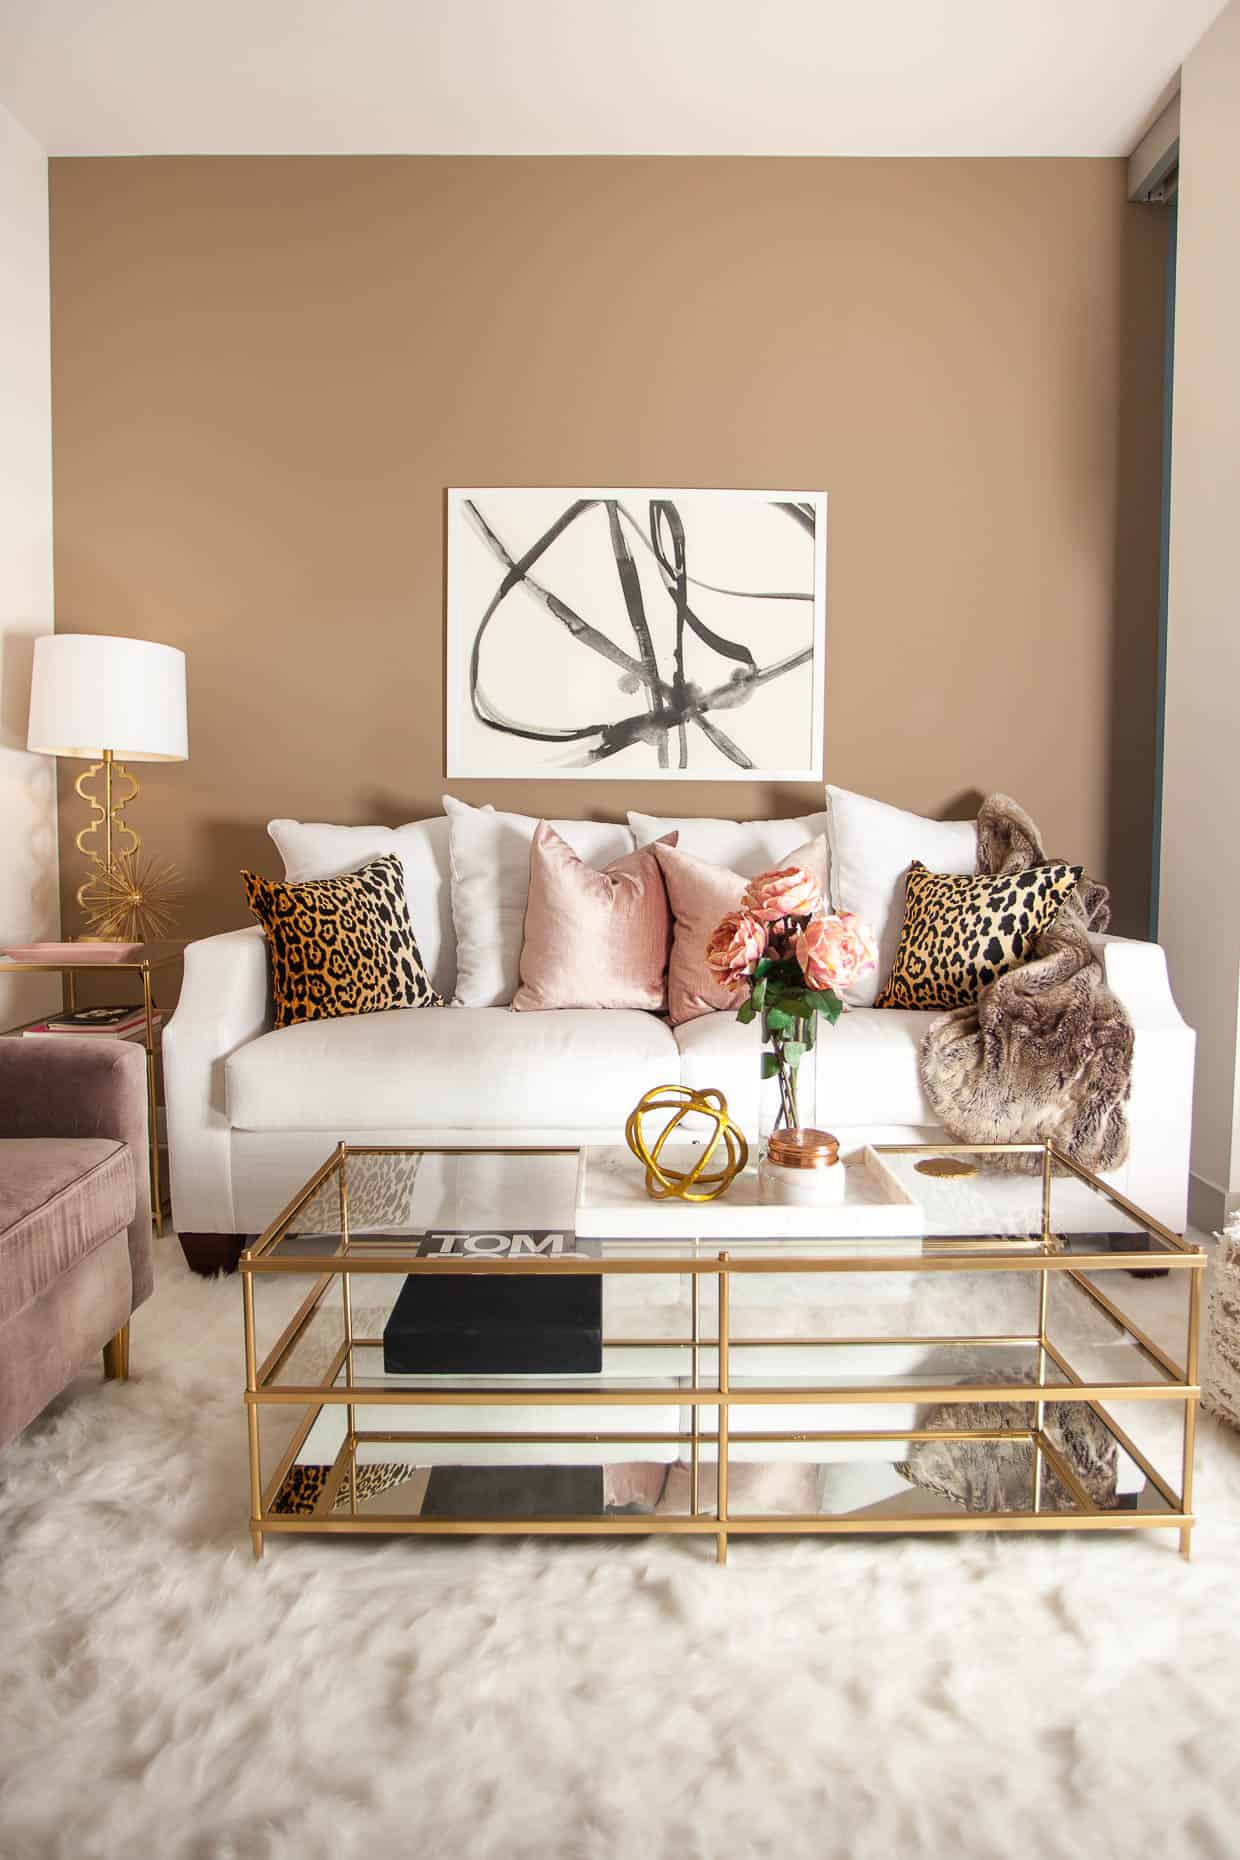 When in pink choose dusty pink. Dusty pink is one of the most versatile colors you can incorporate in your home.